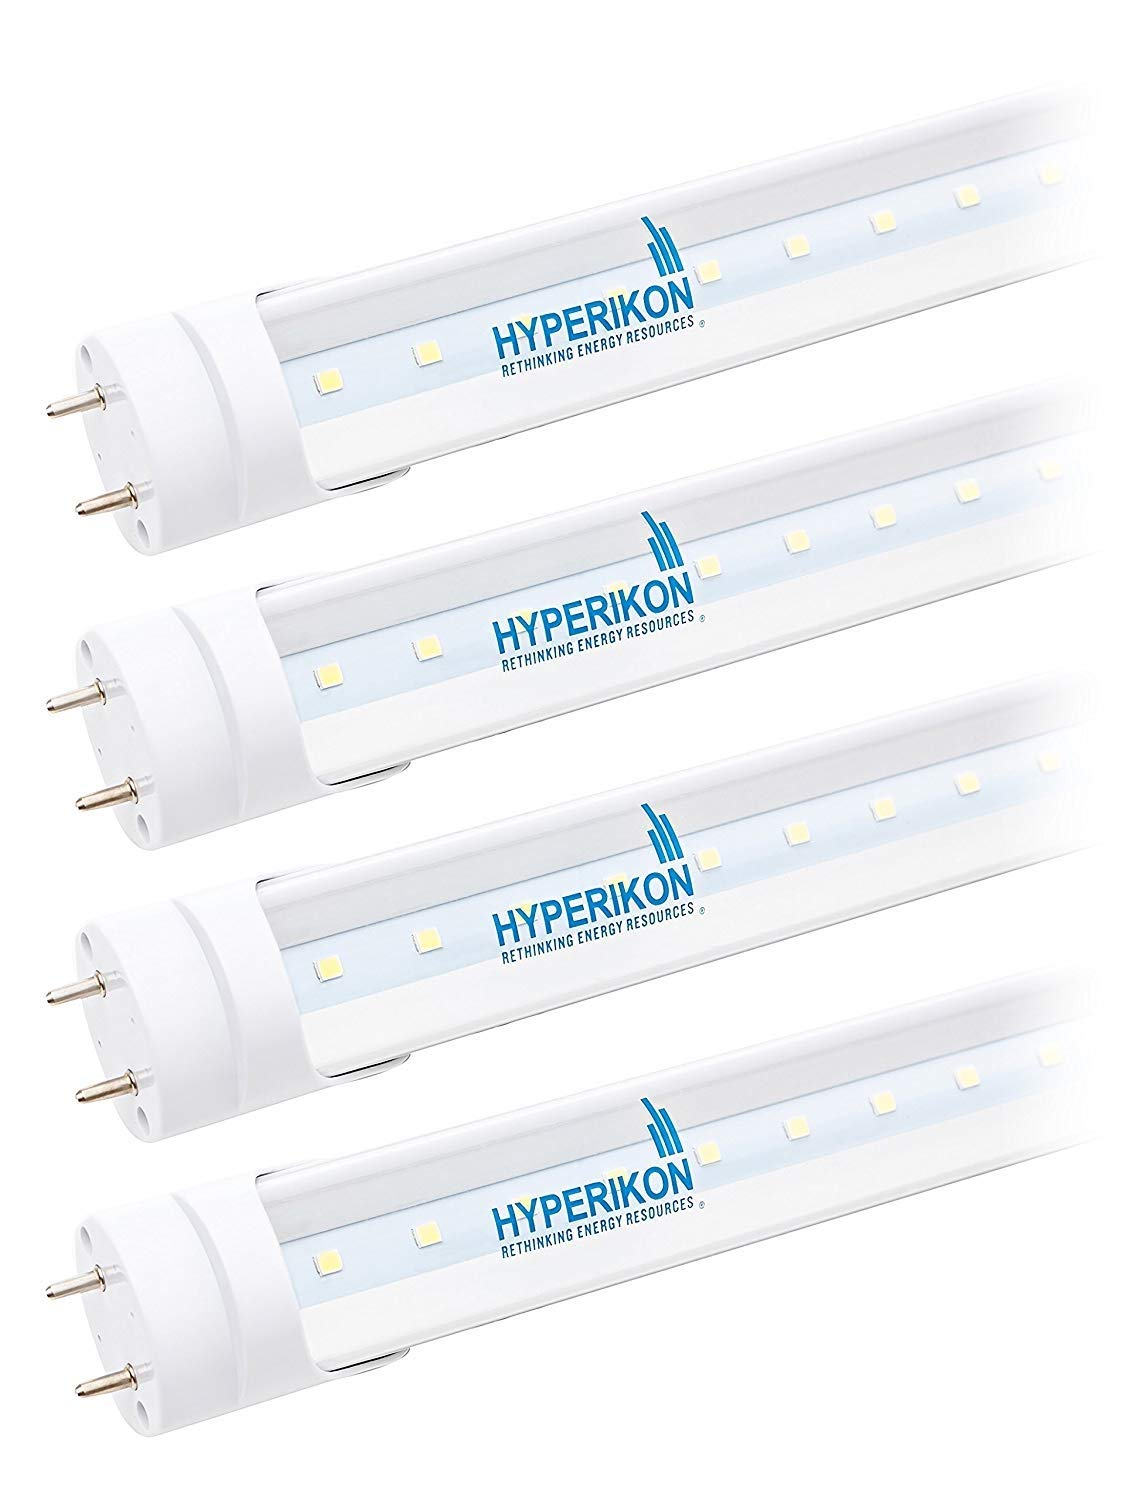 Hyperikon T8 Led Tube 3ft Light 14w 30w 40w Equiv Ballast Convert T12 To Wiring Diagram Bypass Shatterproof F30t12 Fluorescent Replacement 1400 Lumens 4000k Clear Office